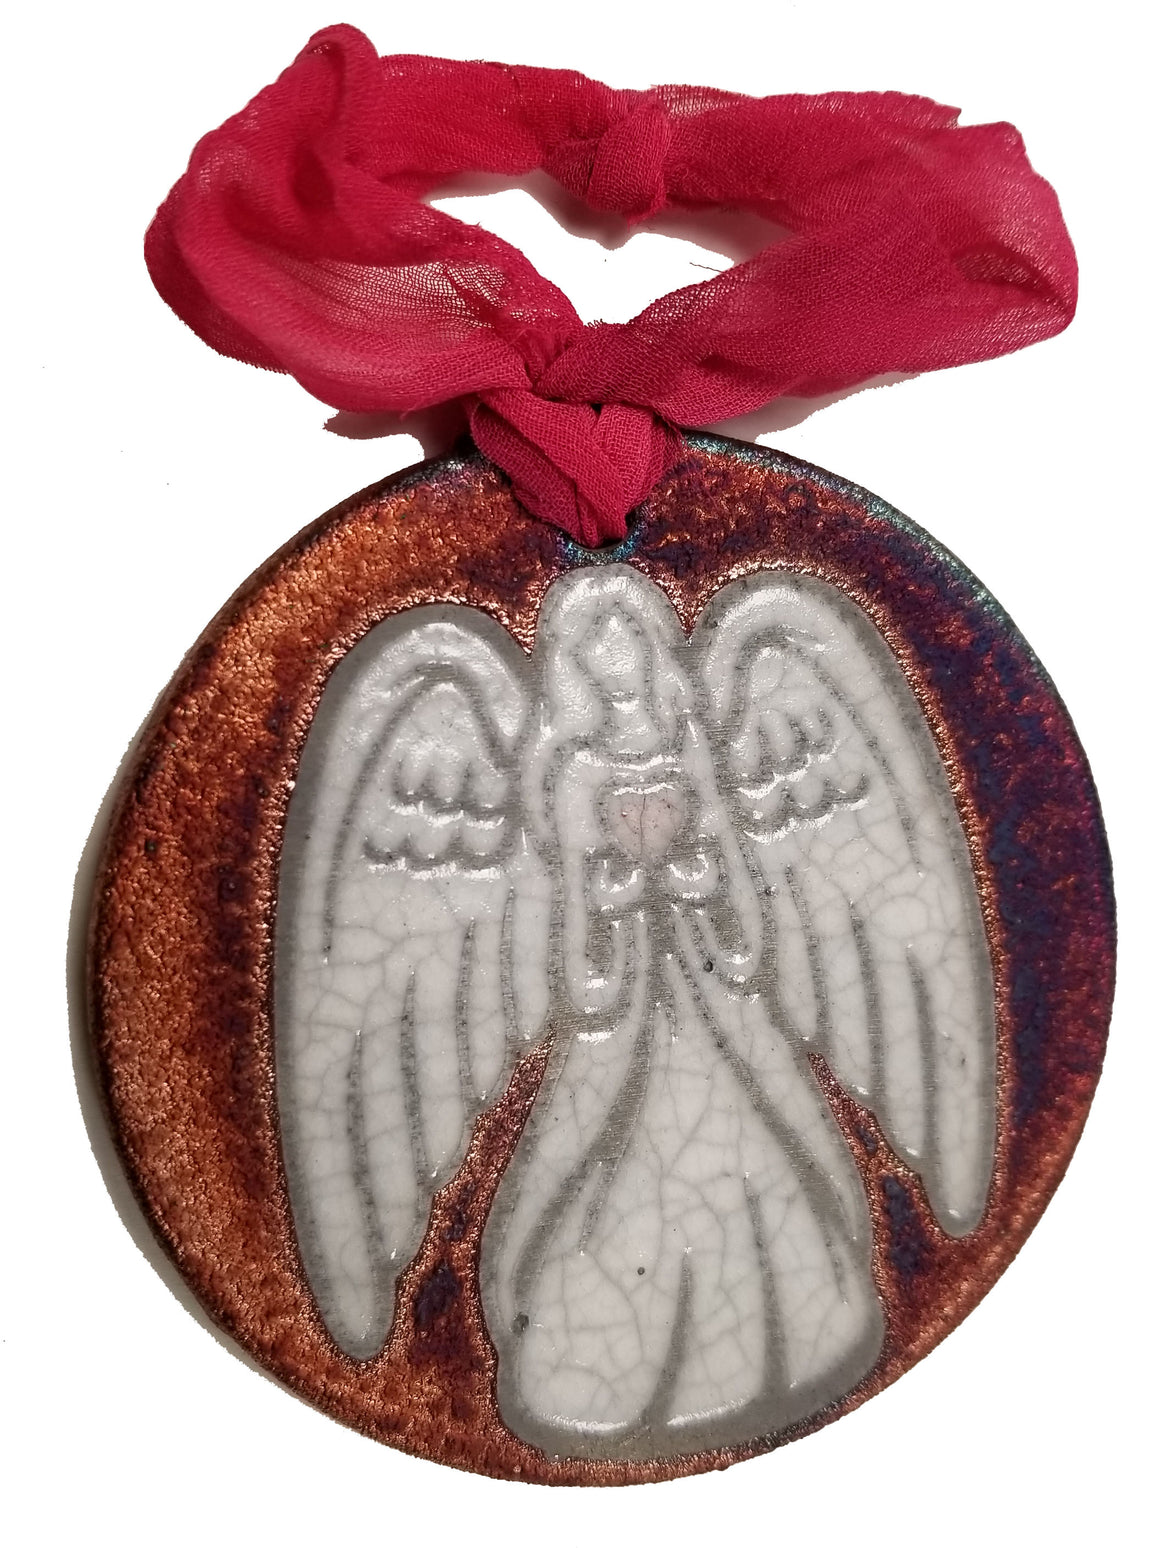 Angel with Heart Silhouette Medallion Ornament from Raku Pottery